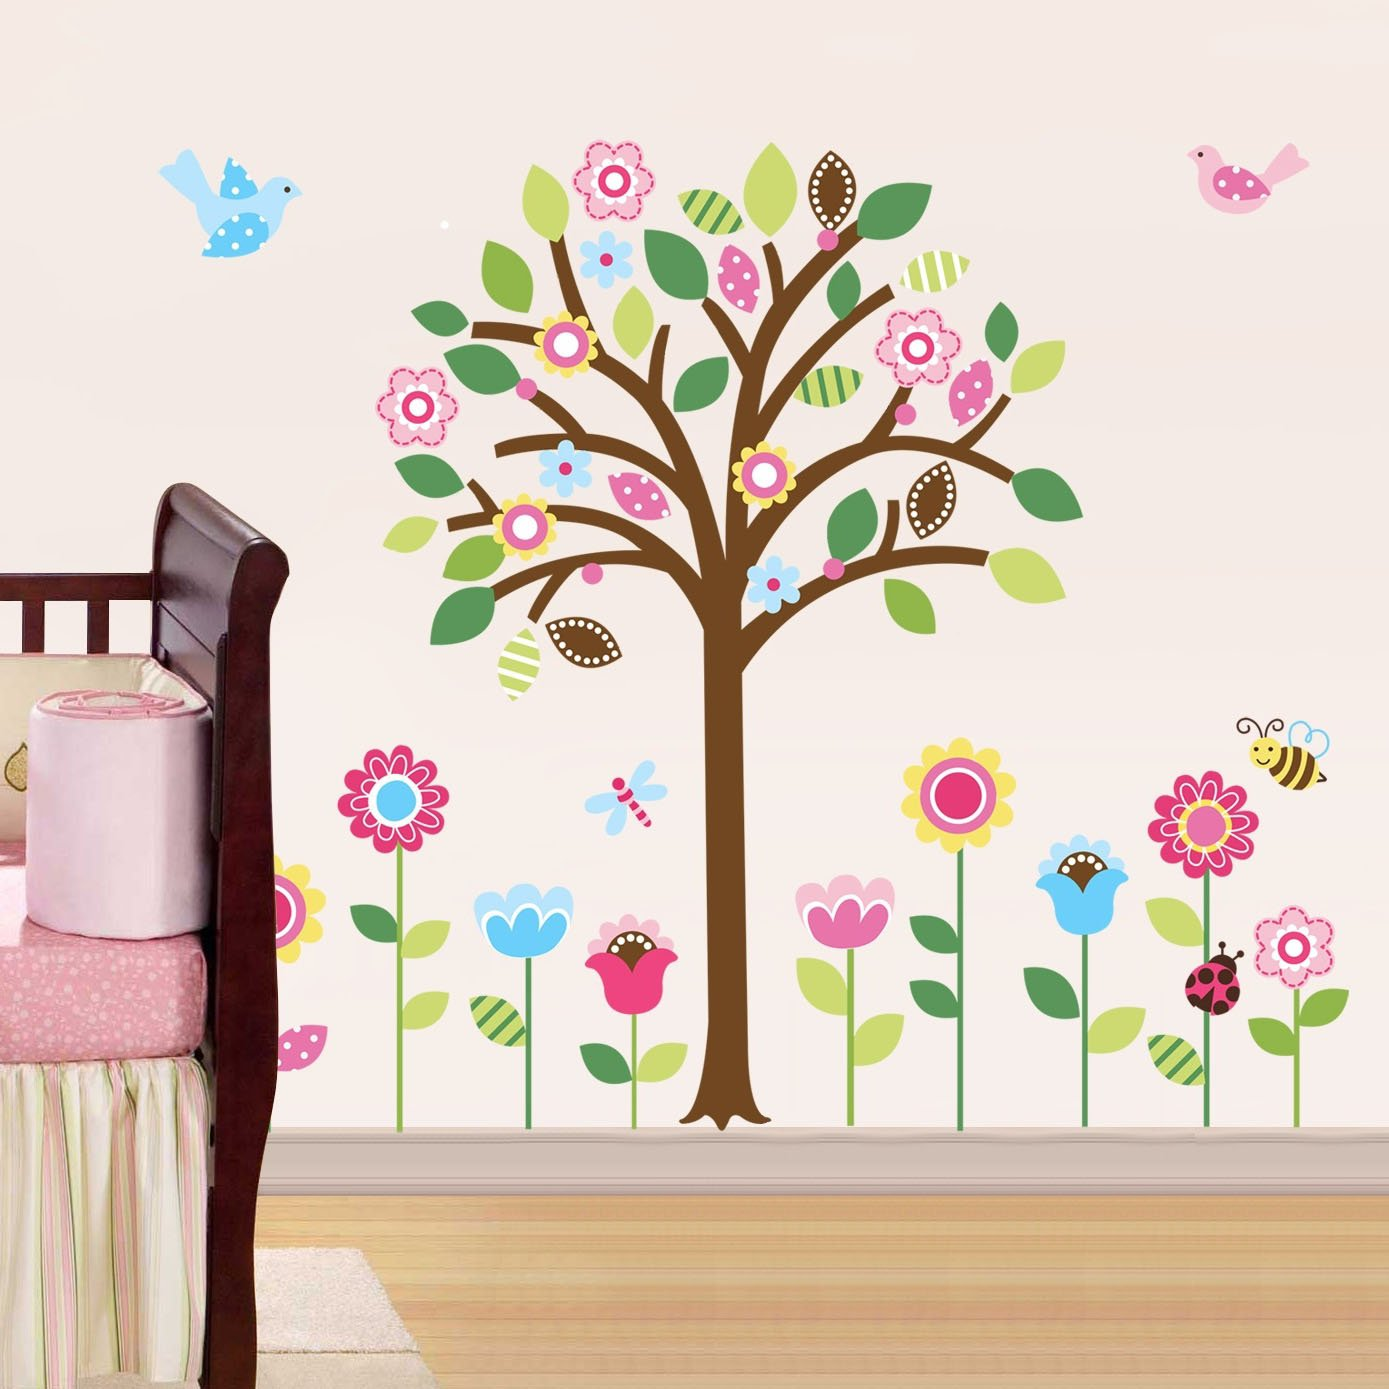 Kids room wall decor stickers - Amazon Com Pretty Pastel Garden Giant Peel Stick Wall Art Sticker Decals Baby